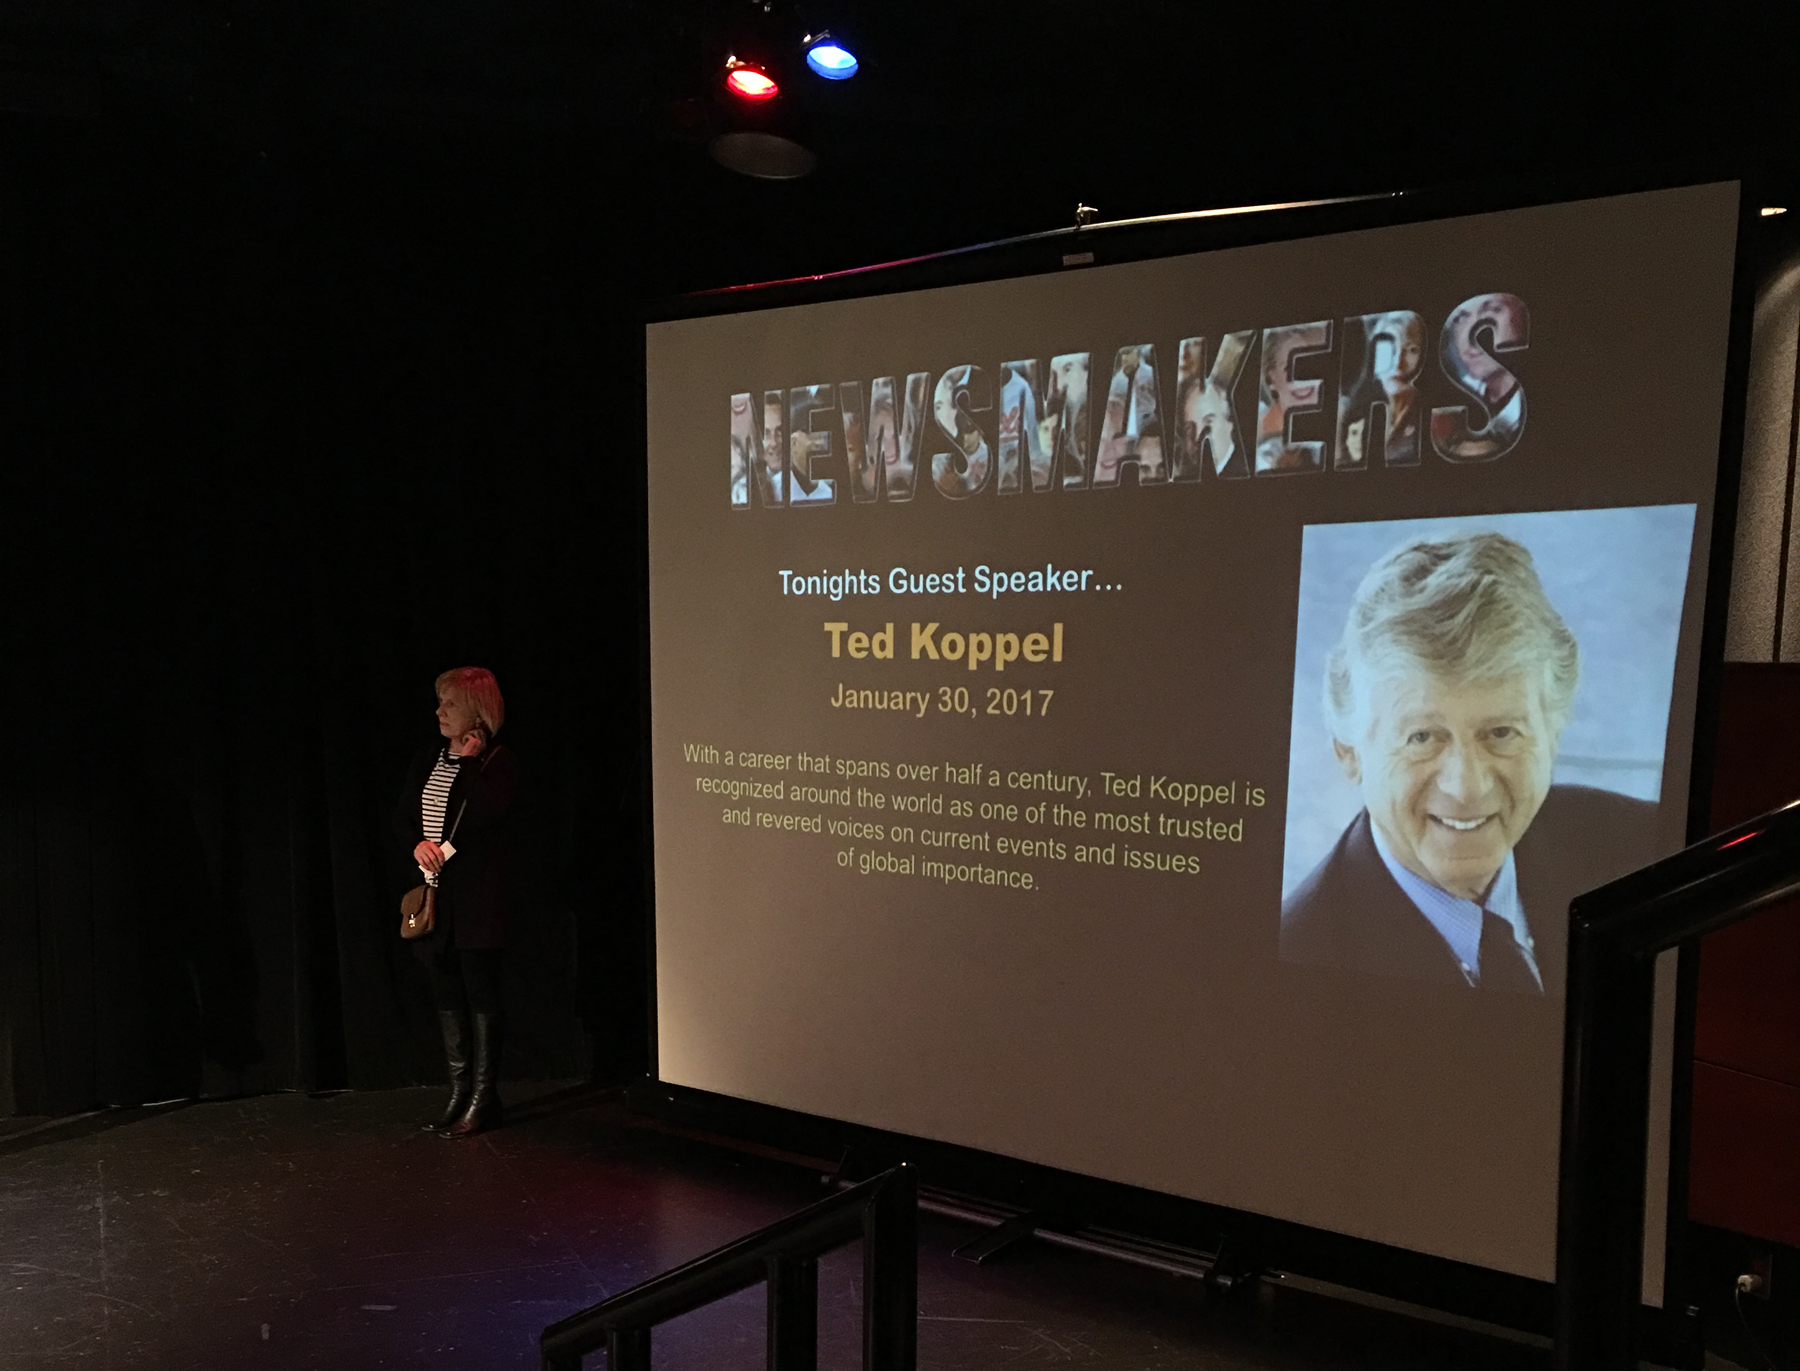 Ted Koppel as part of Lesher Center Newsmaker Series in Walnut Creek, CA